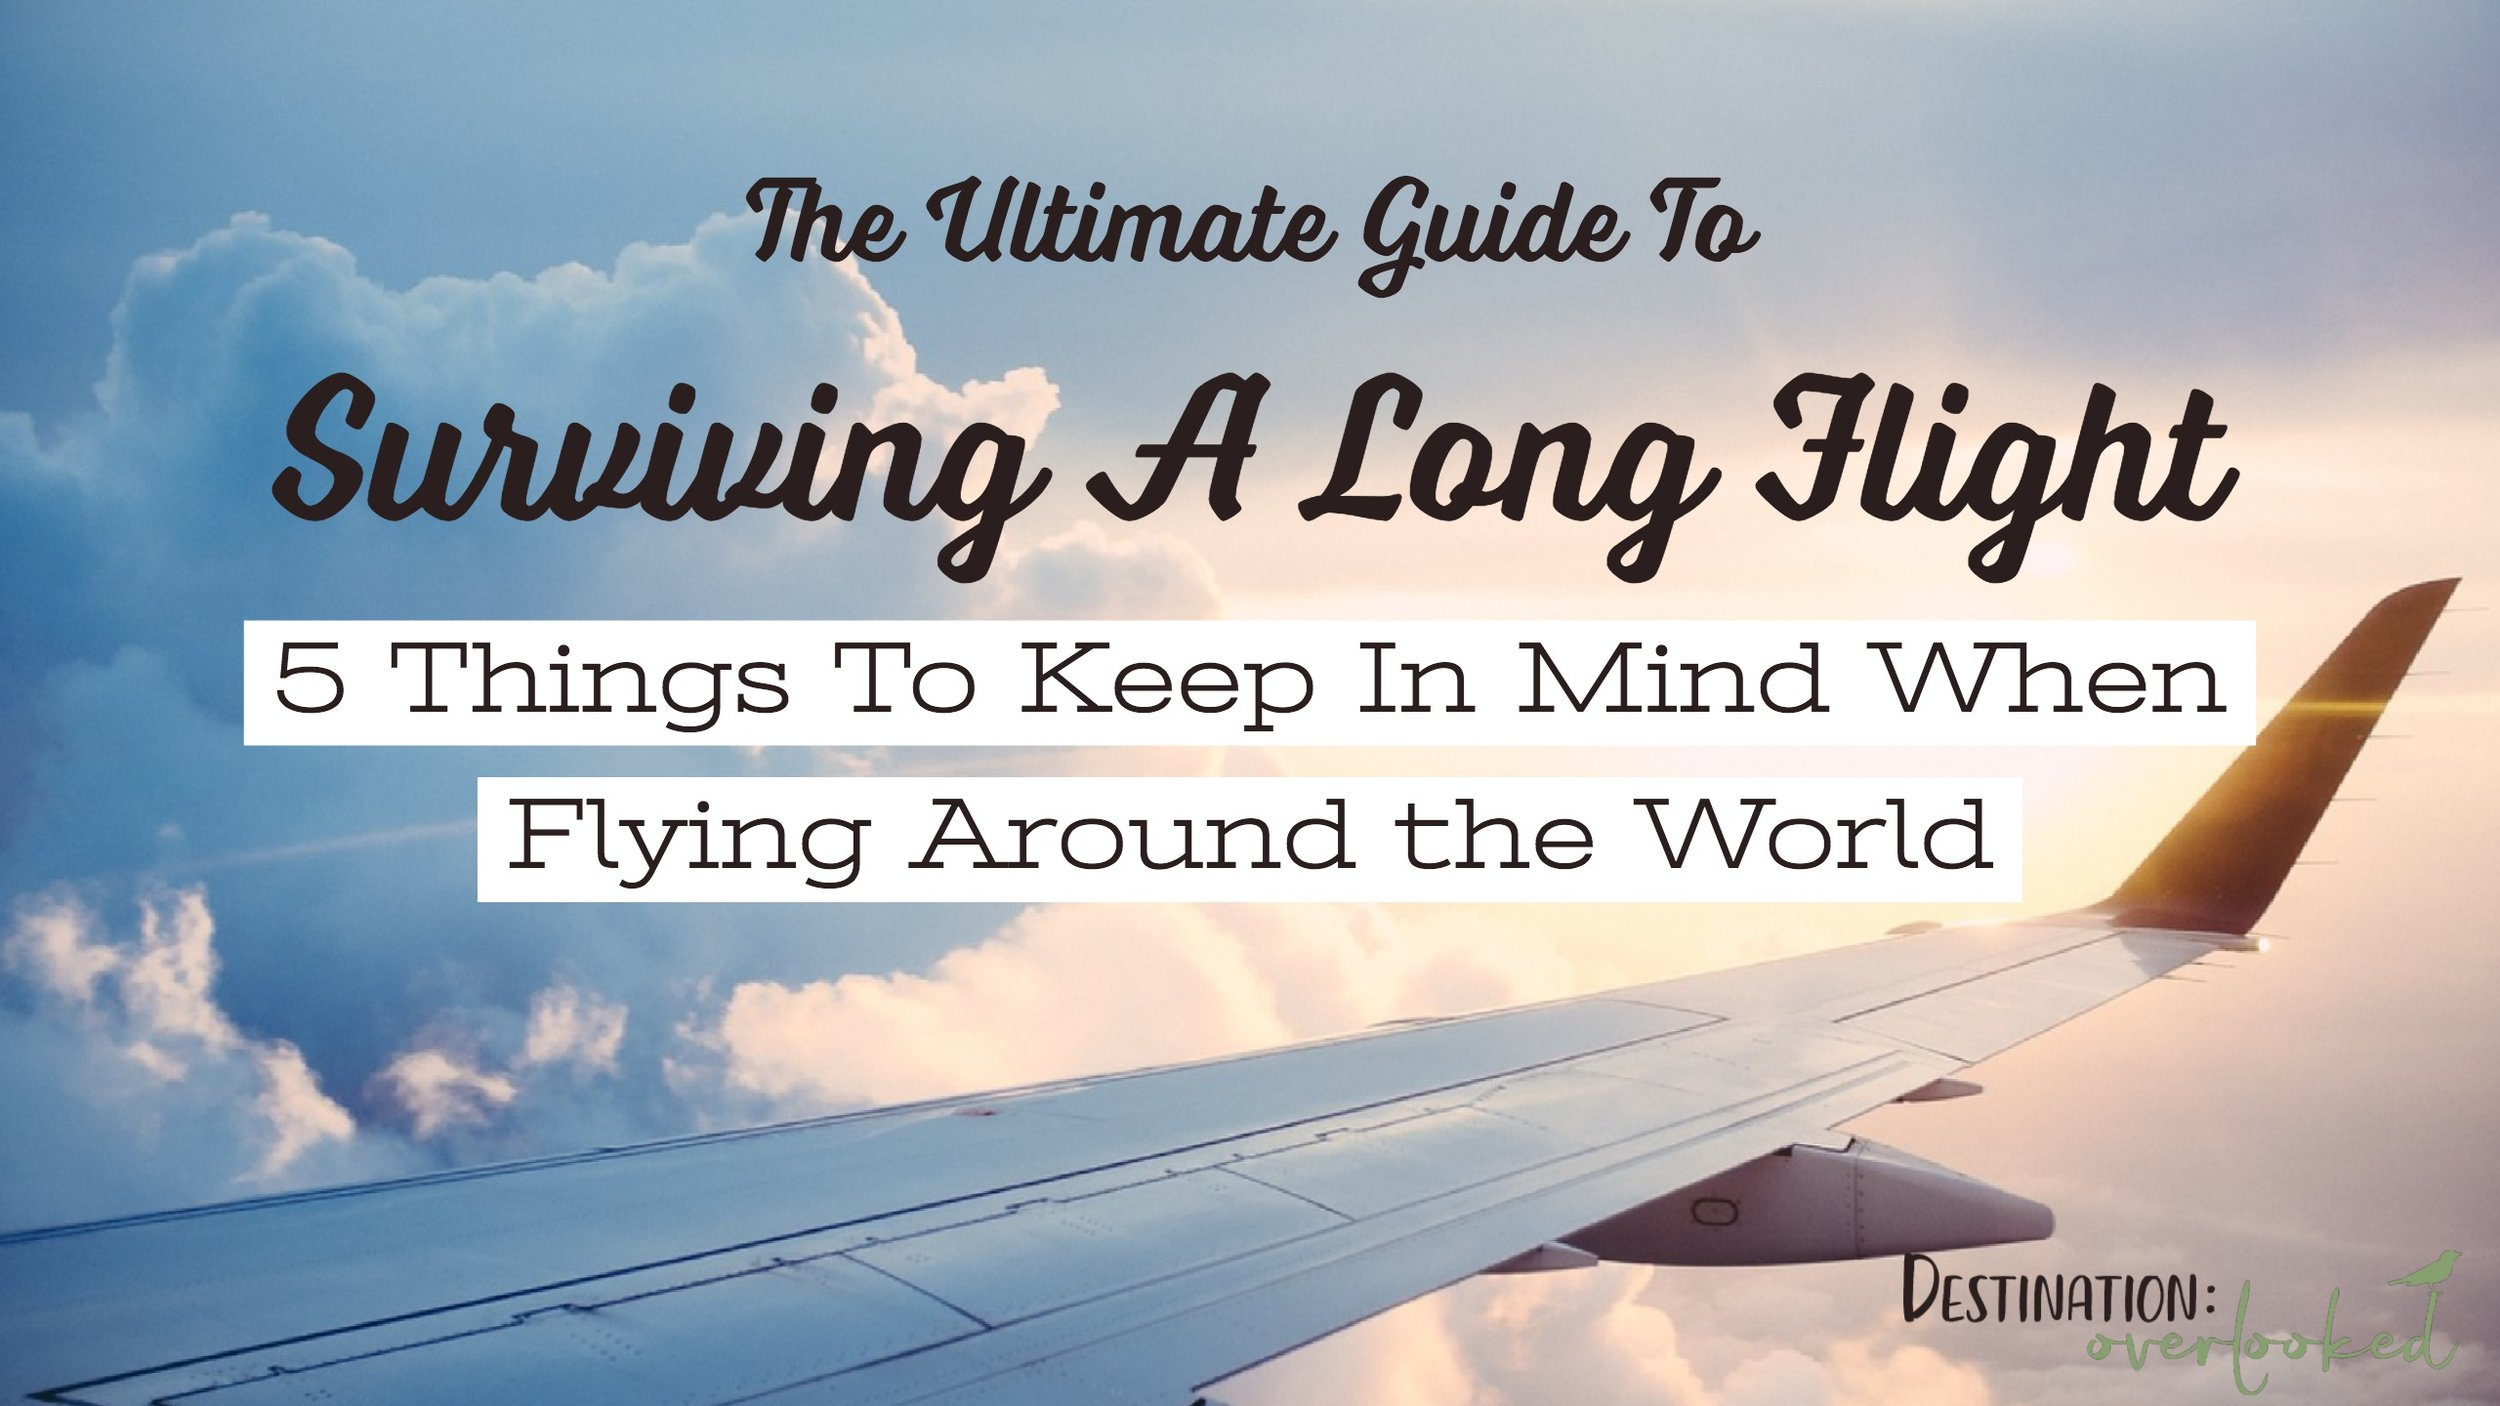 The Ultimate Guide To Surviving A Long Flight: 5 Things To Keep in Mind When You Fly Around The World